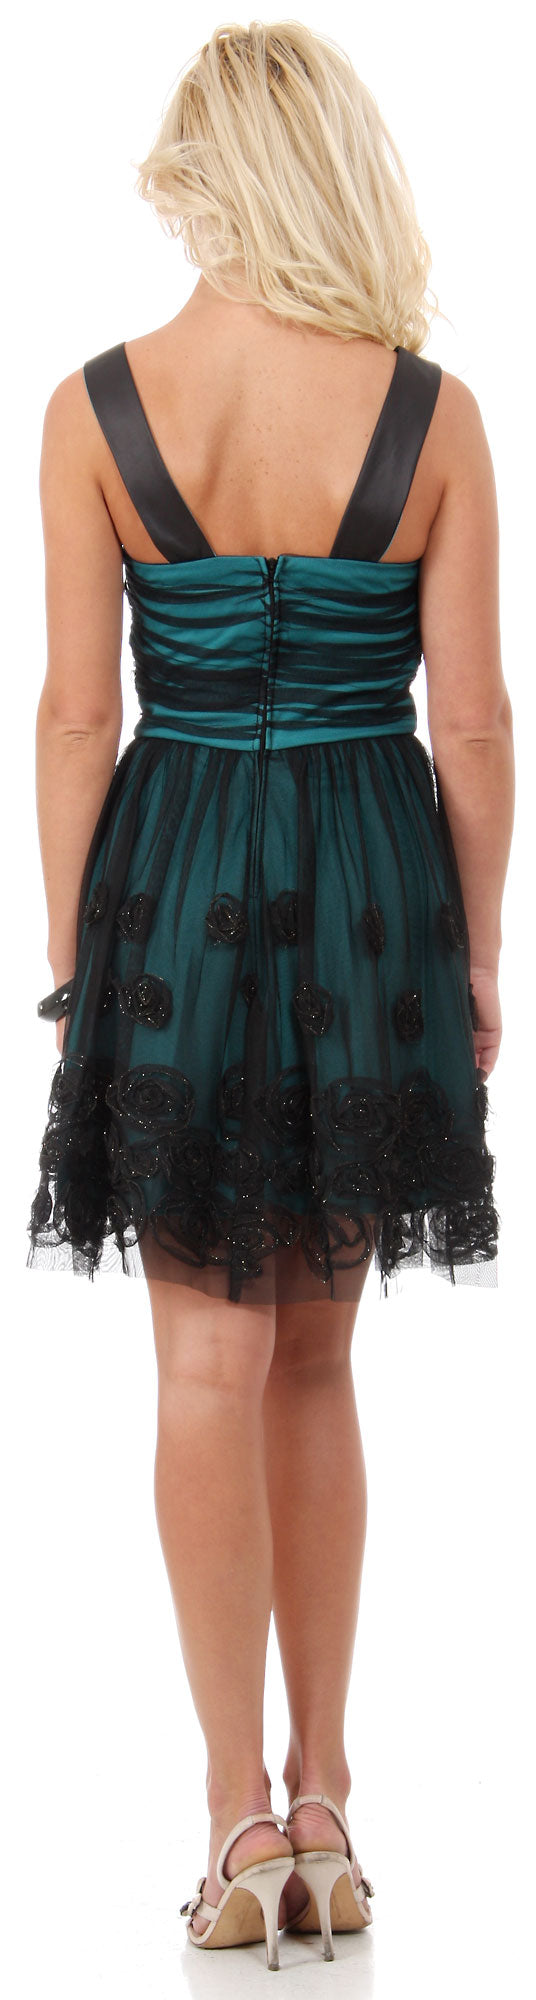 Image of Rosette Pattern Short Formal Party Dress In Mesh back in Black/Teal